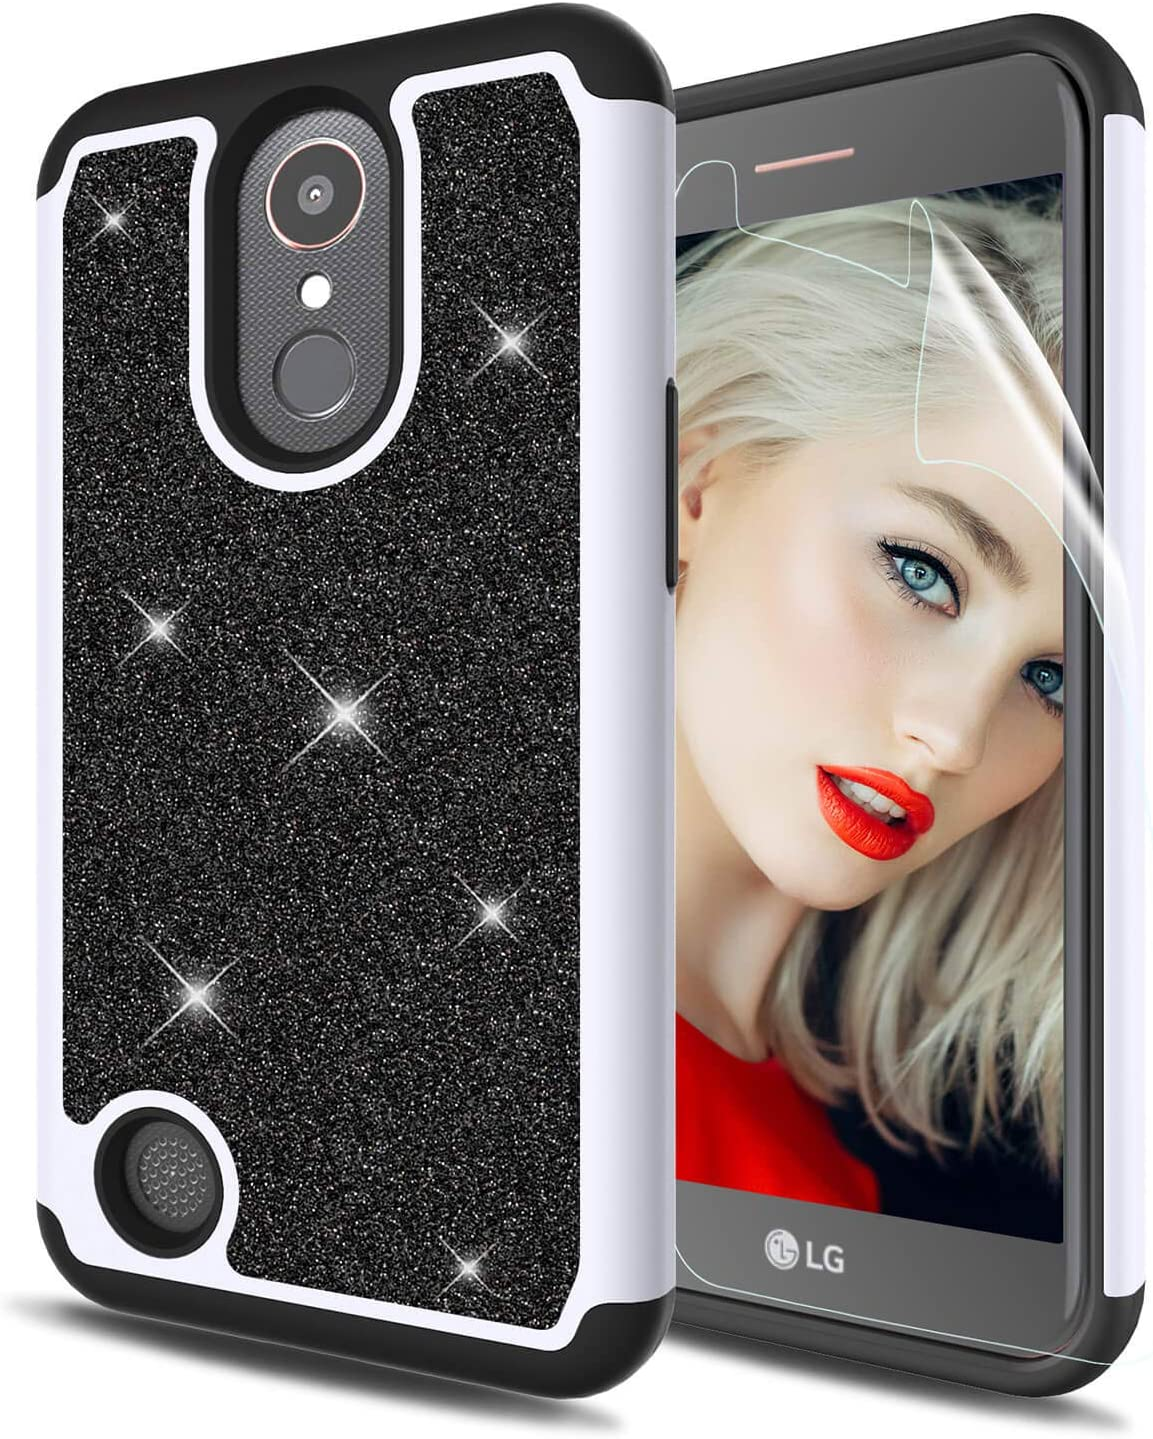 HenSun LG K20 Plus Glitter Case LG K20V K20 V,LG Harmony/LG Grace/LG VS501/LG K10 2017 Phone Case with Screen Protector,2 in 1 Shockproof Protective Girls Women Hard Back Soft Bumper Case-Black